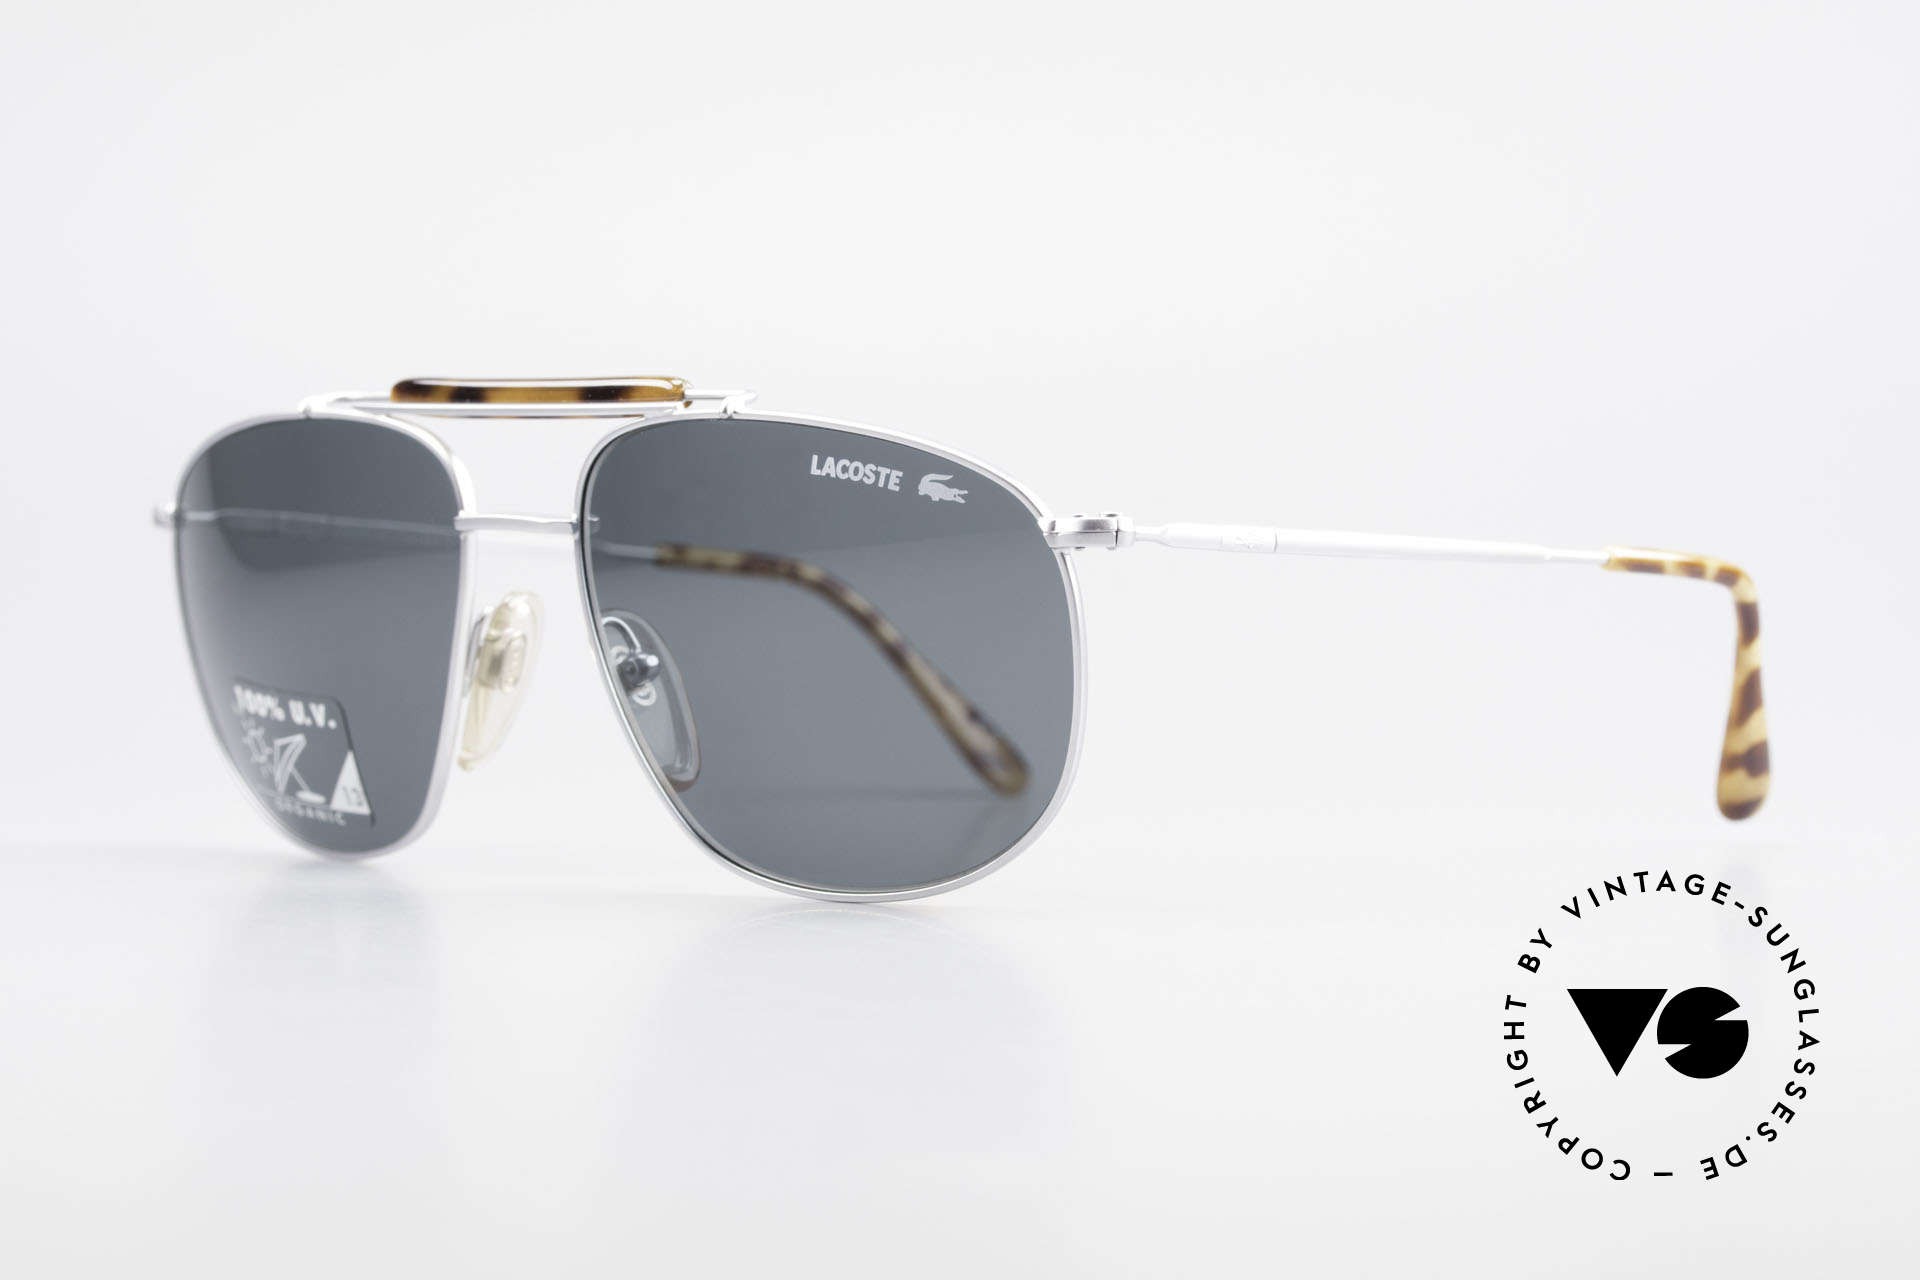 Lacoste 149 Titanium Sports Sunglasses, solidly built frame and very pleasant to wear!, Made for Men